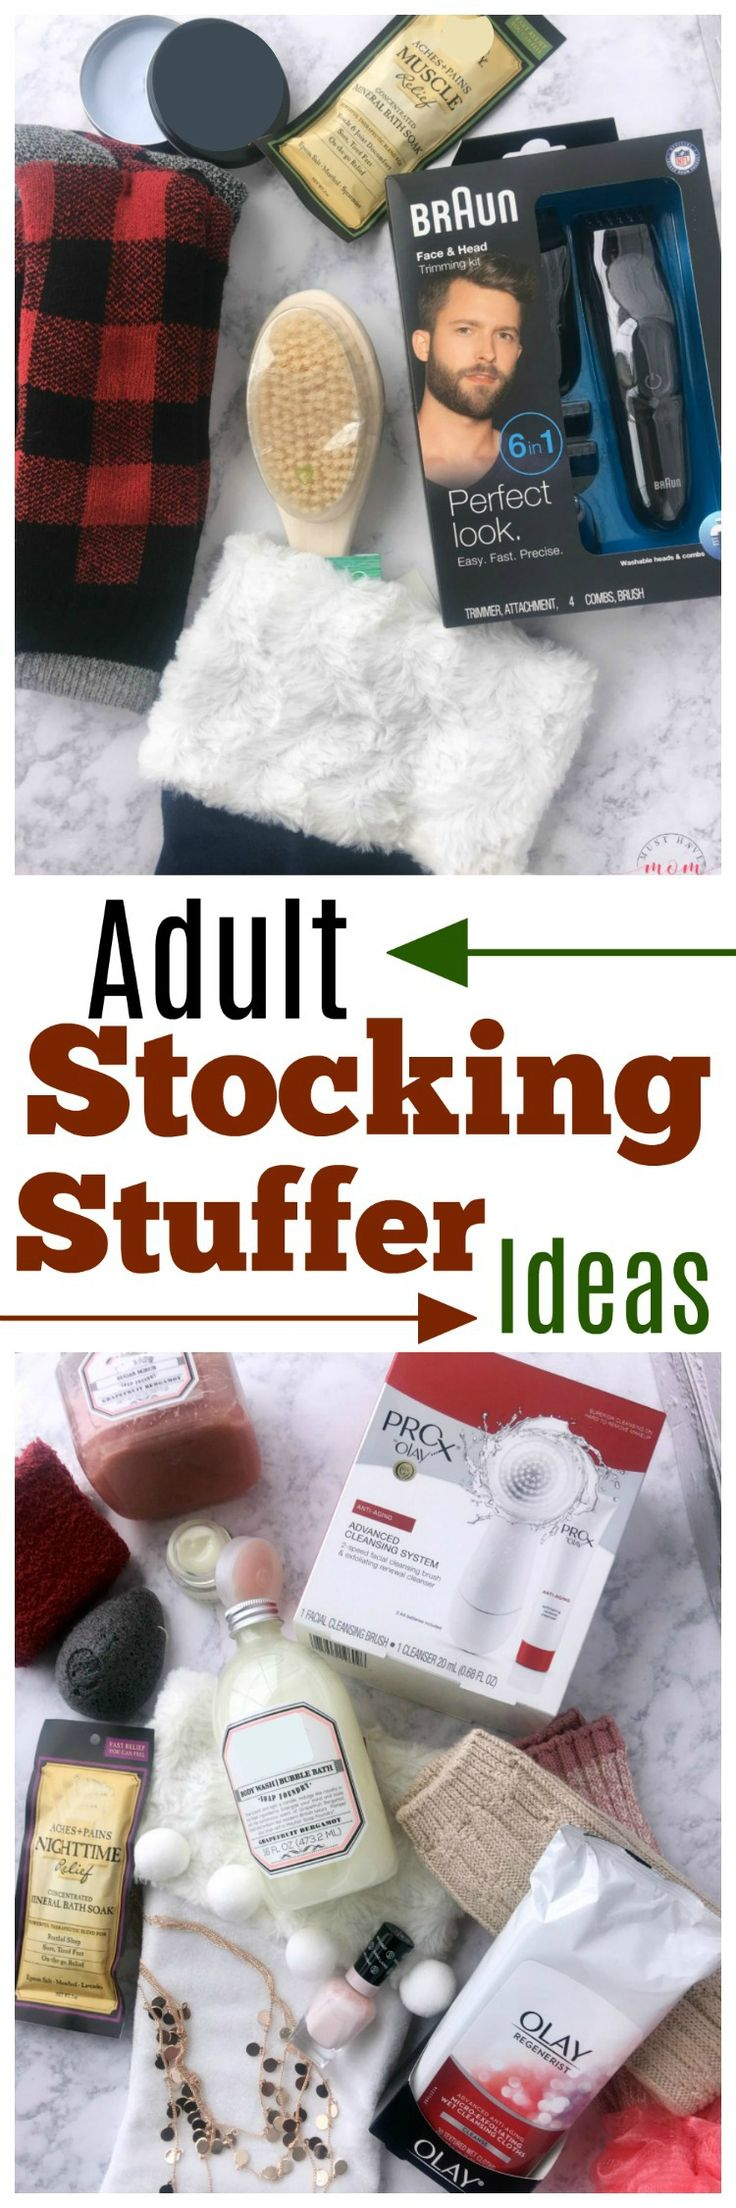 Stocking stuffers for men & stocking stuffers for women! Great stocking stuffer ideas. #Ad #StockingStufferUpgrade